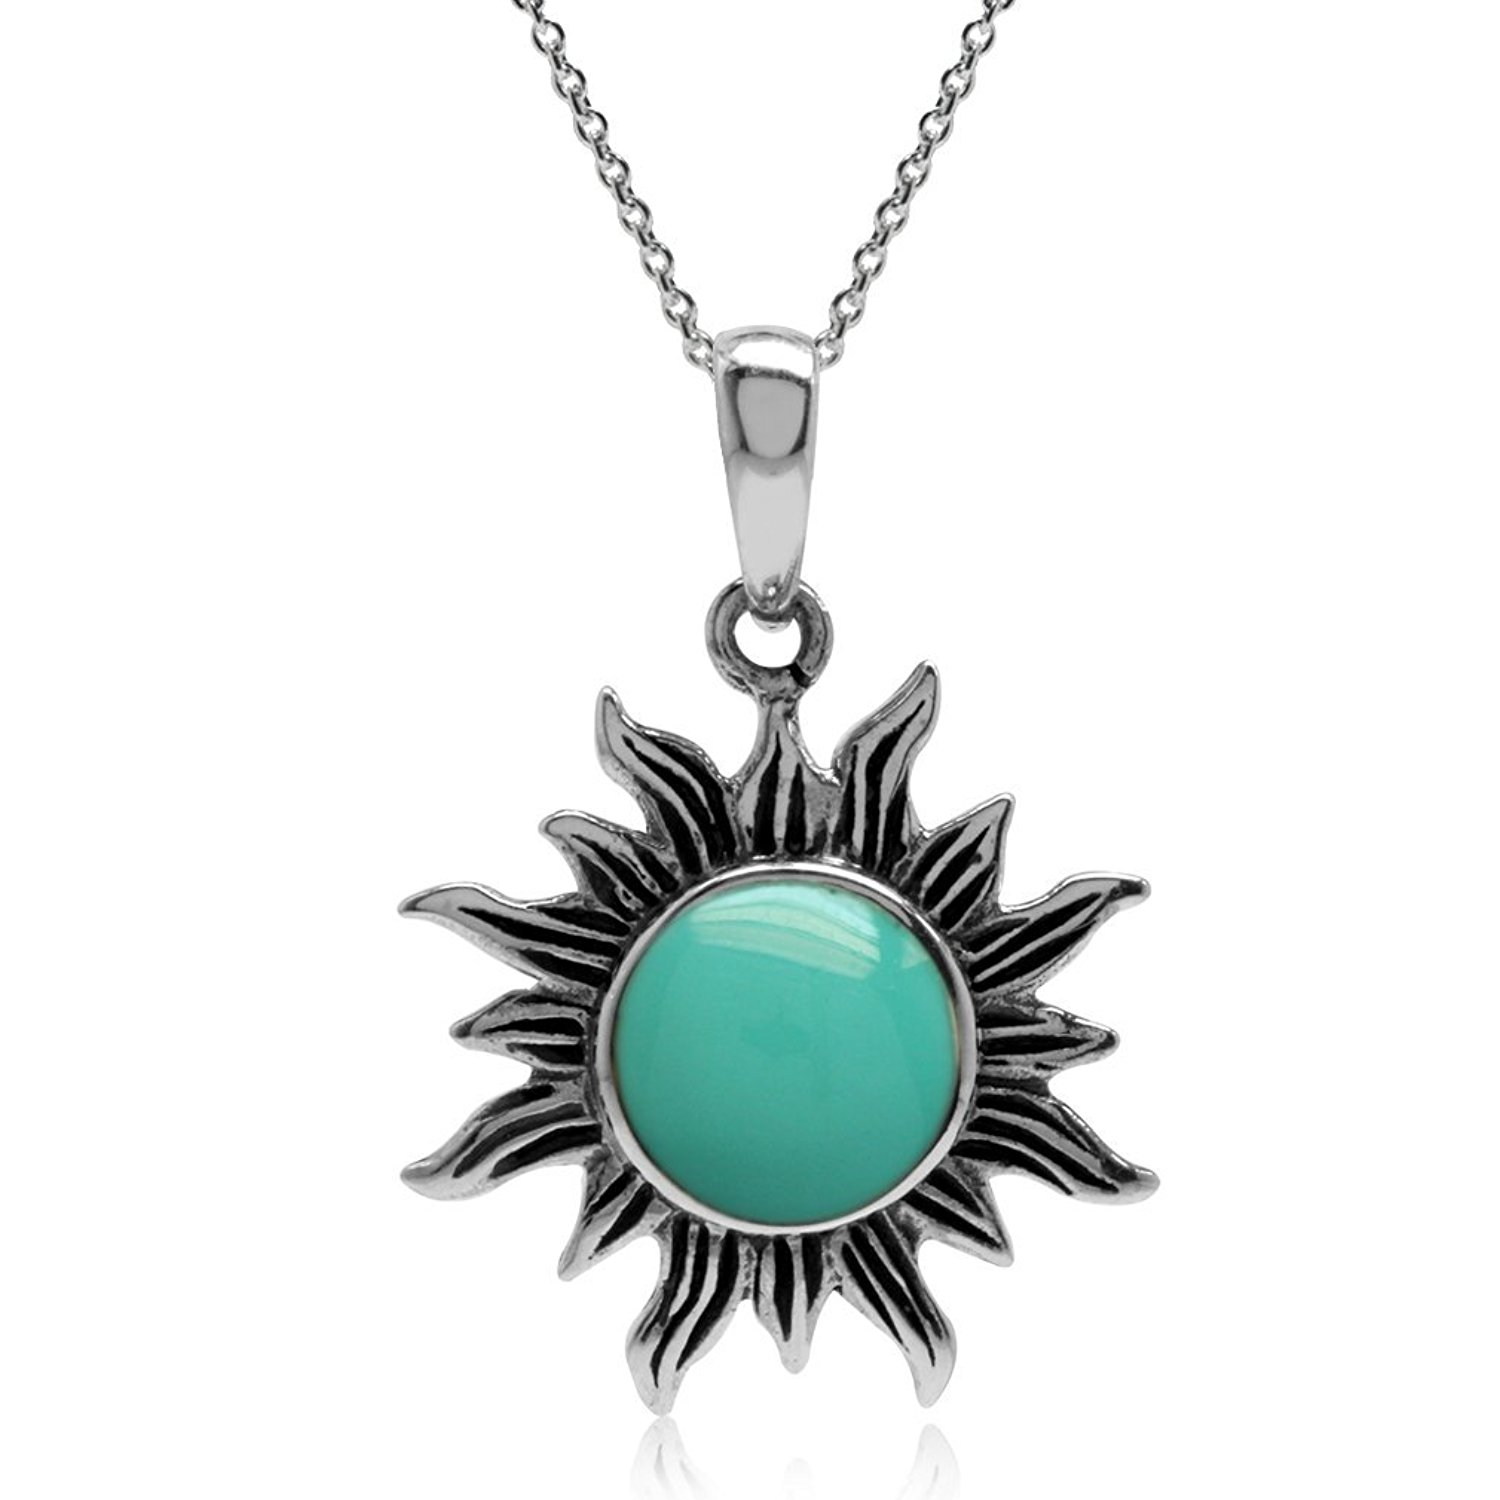 Created Green Turquoise 925 Sterling Silver Sun Ray Inspired Pendant w/ 18 Inch Chain Necklace